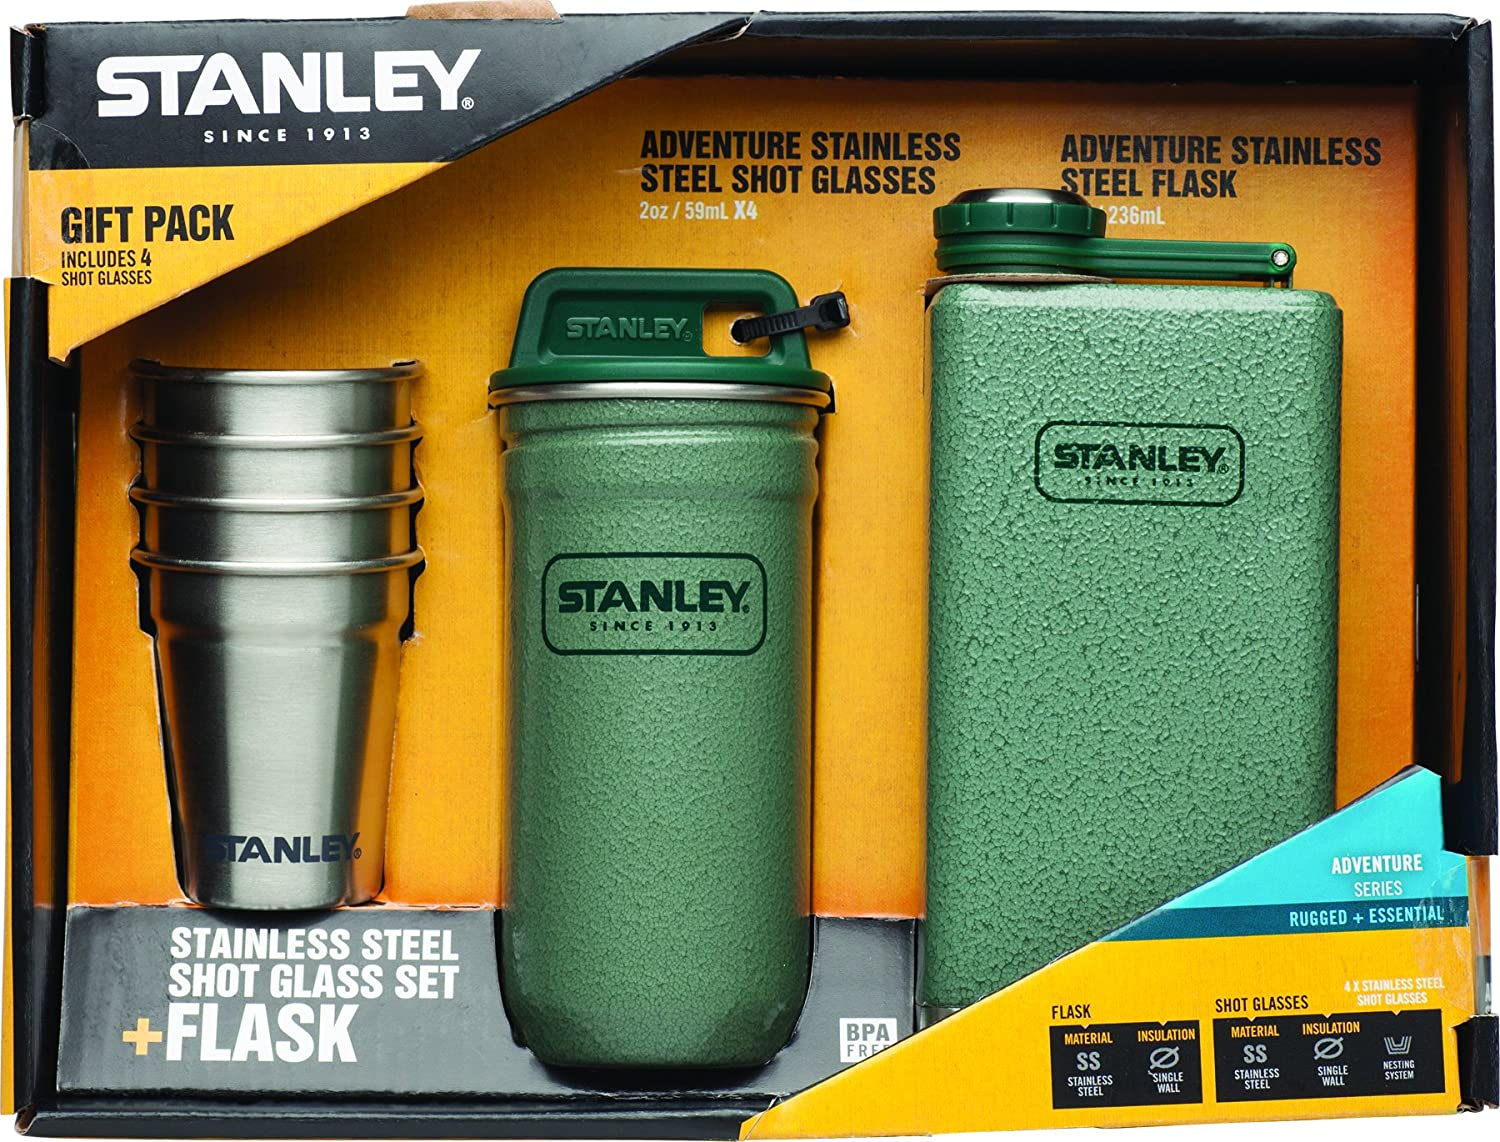 Stanley Stainless Steel Shots + Flask Gift Set Flannel Red Sportsman Supply Inc. 10-01883-026